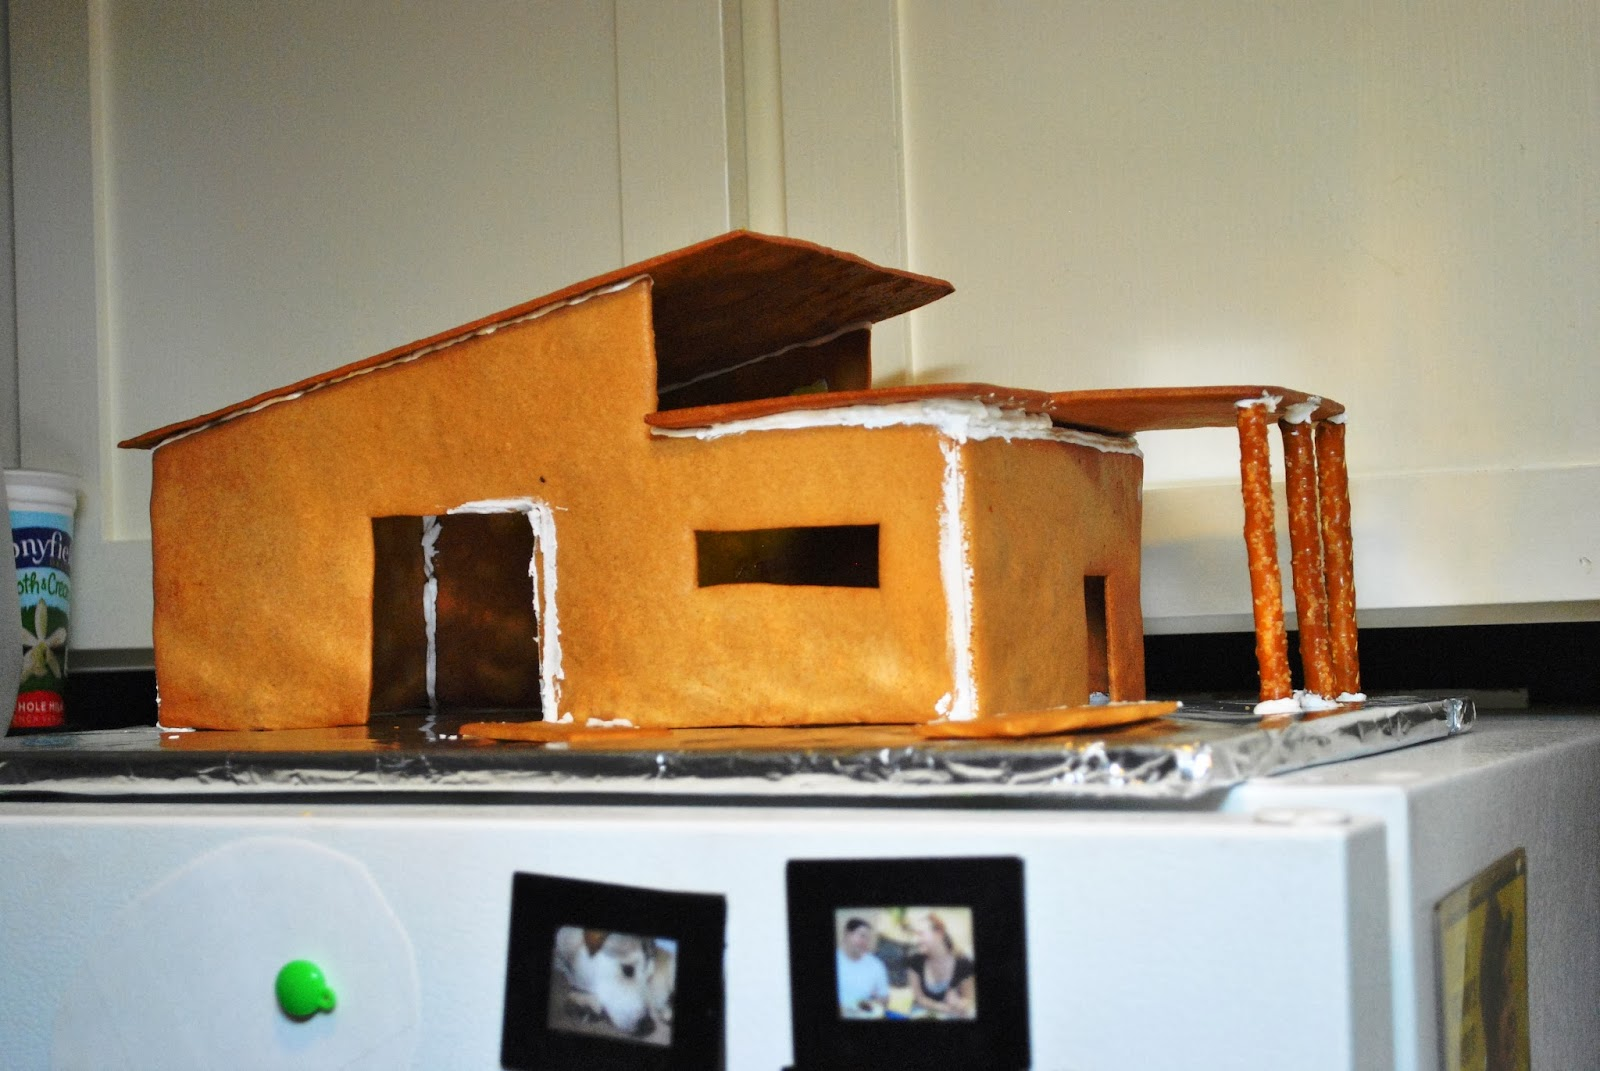 Making gingerbread houses for the first time – Home In Disarray